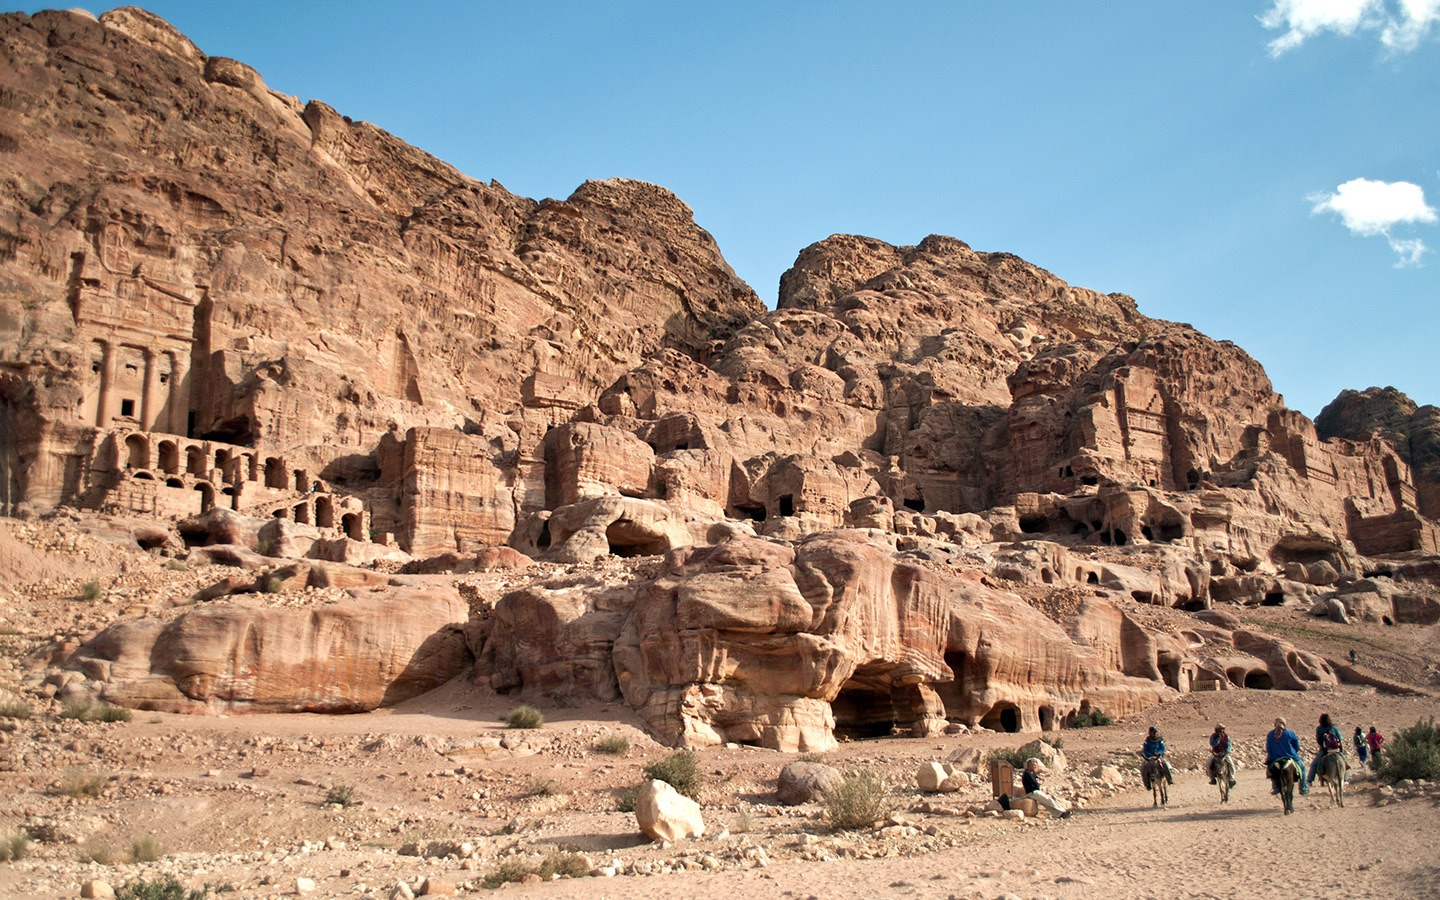 The first-timer's guide to visiting Petra, Jordan